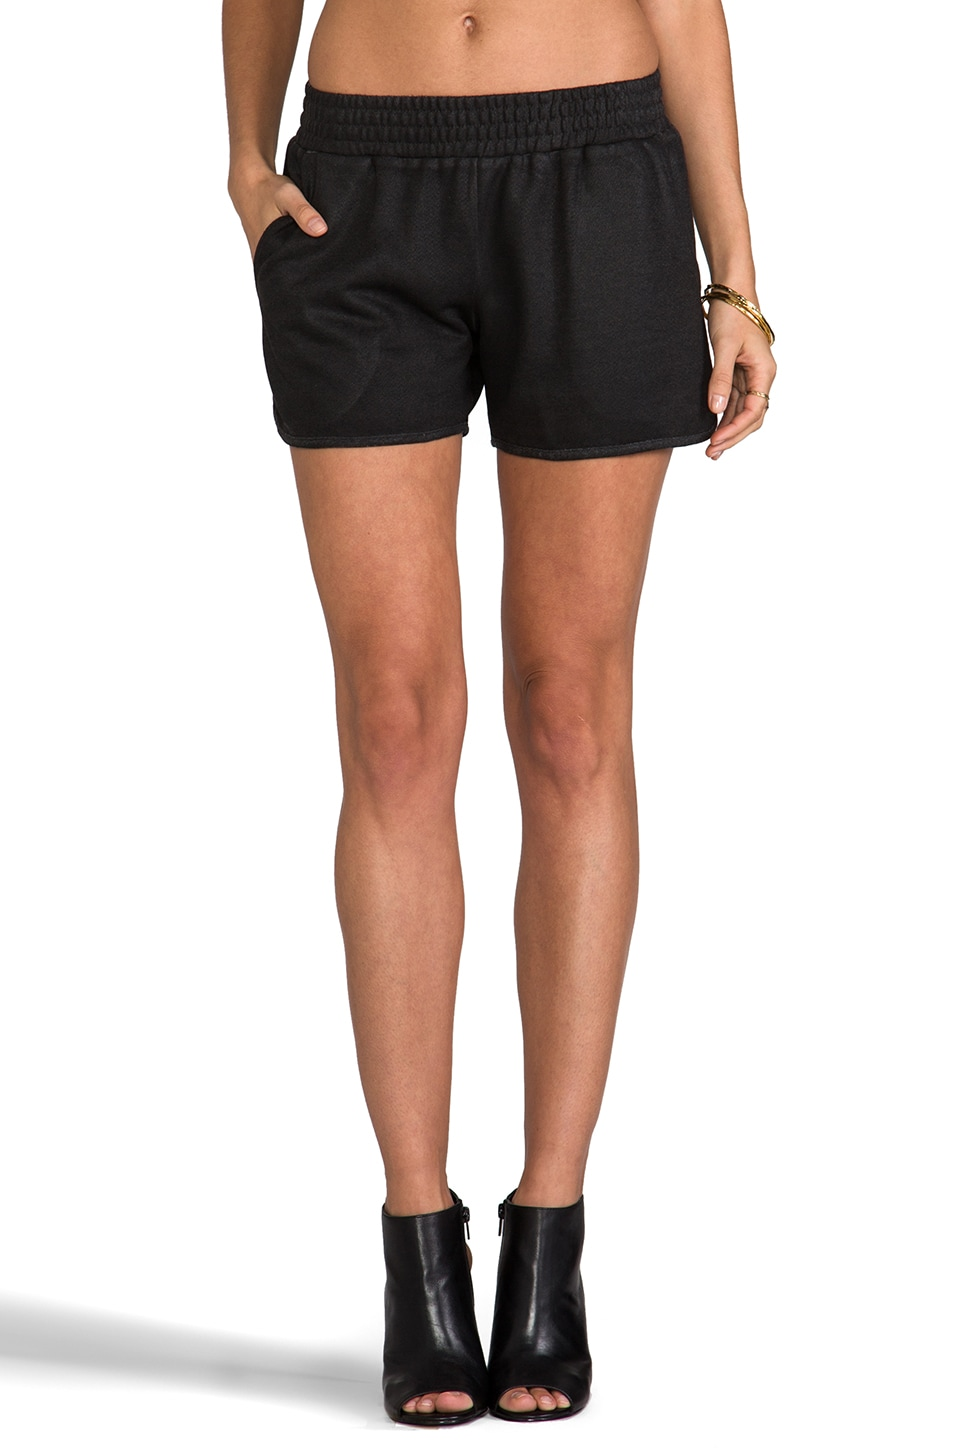 Whetherly Rita Coated Short in Black